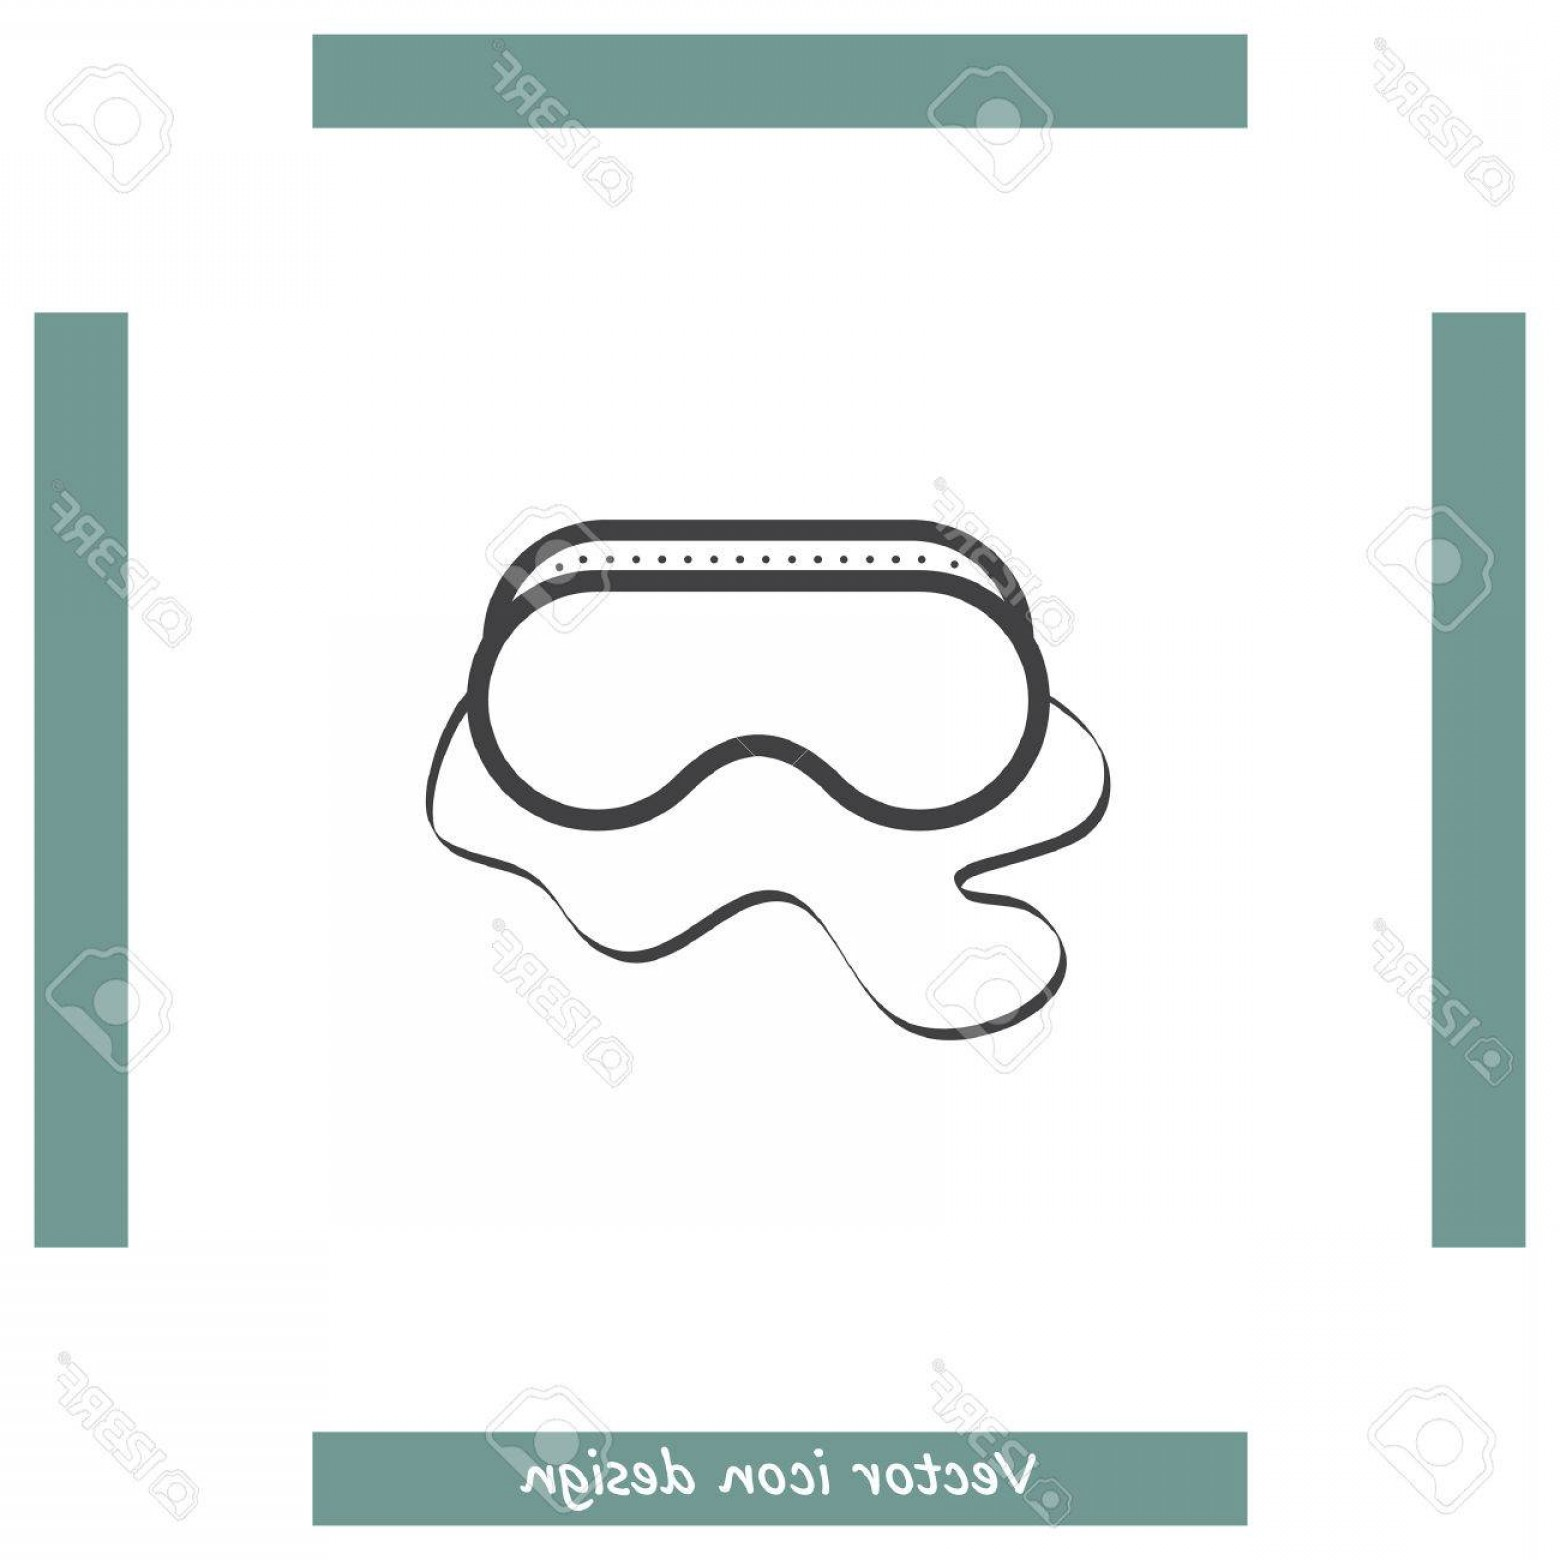 Construction Safety Goggles Vector: Photostock Vector Safety Work Glasses Vector Icon Construction Eye Protection Sign Protective Mask Symbol